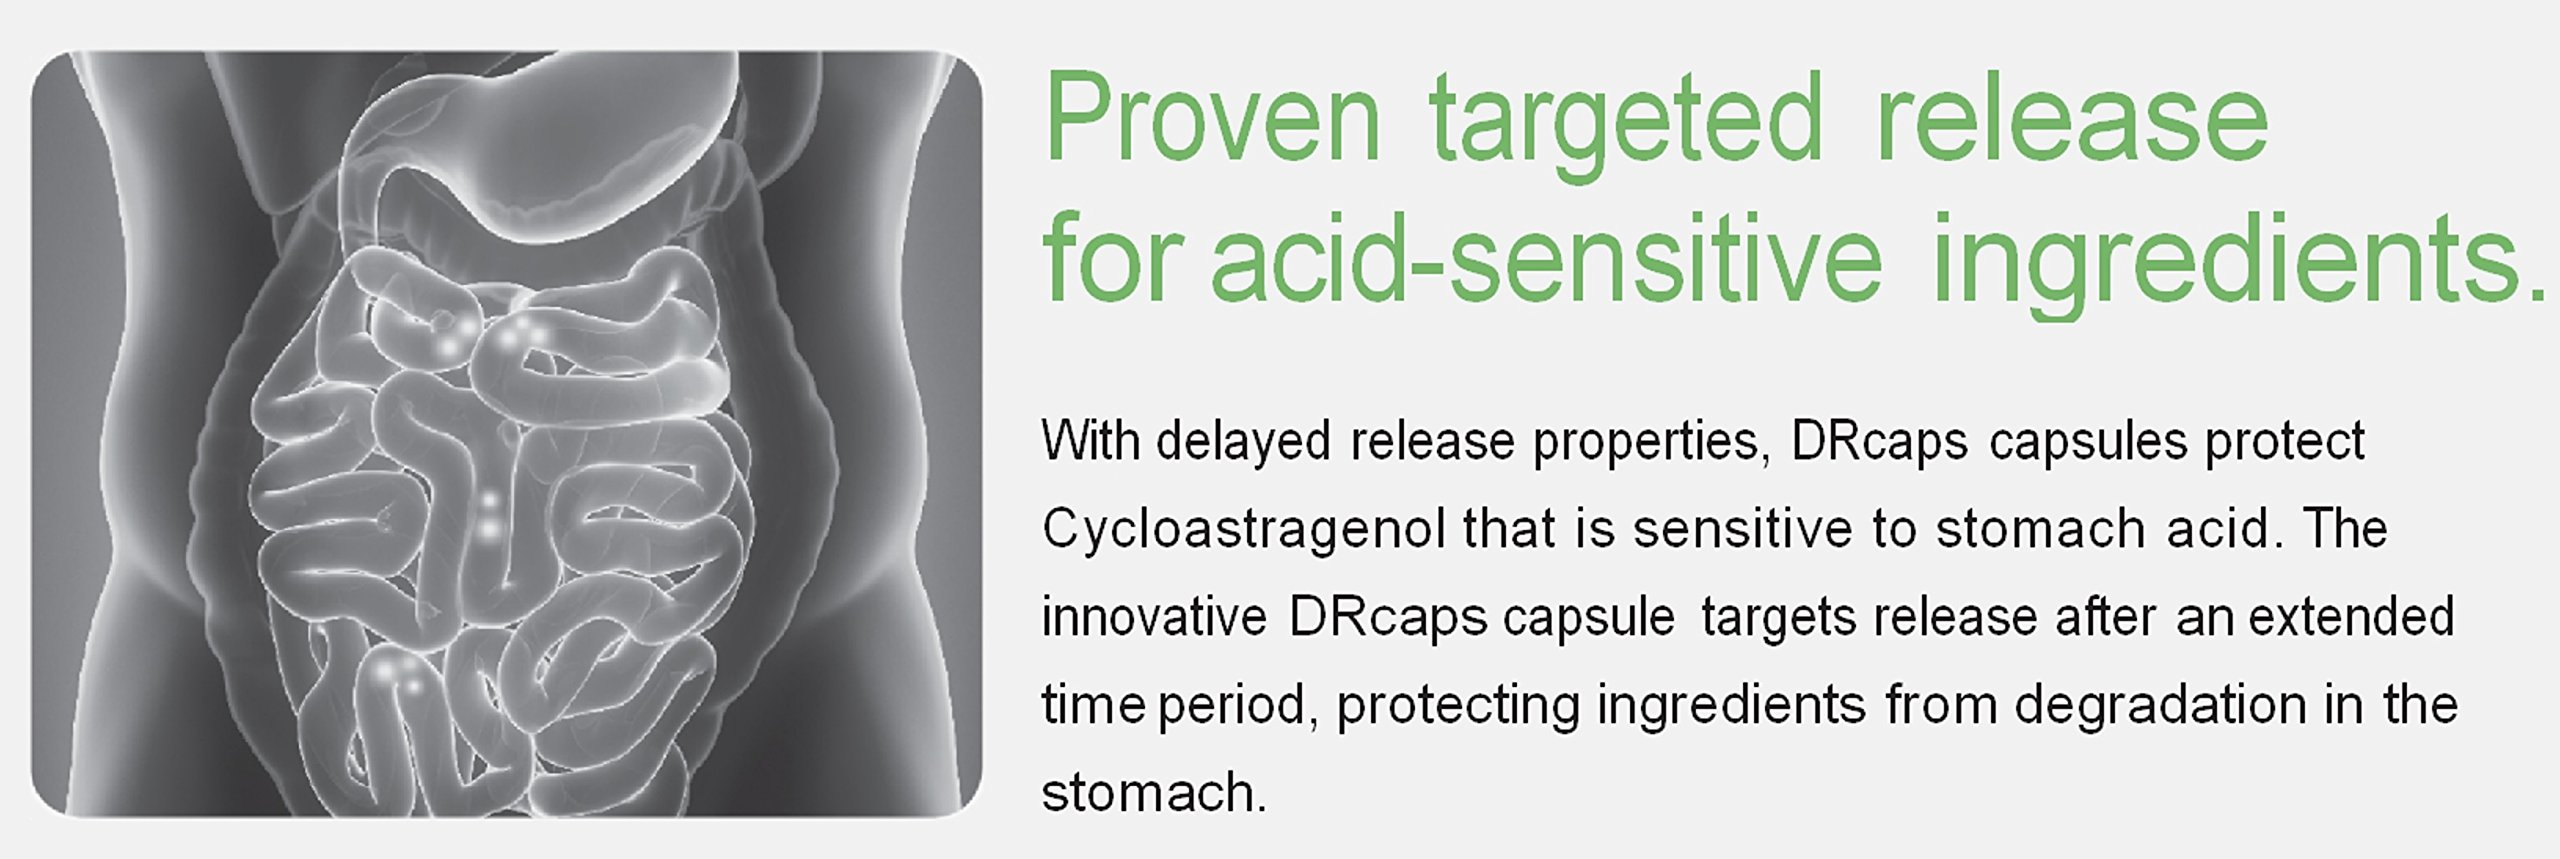 Stomach Acid Protected & Super-Absorption Cycloastragenol 99%, Made in USA, 10mg, 90caps by Nature's Bliss (Image #6)